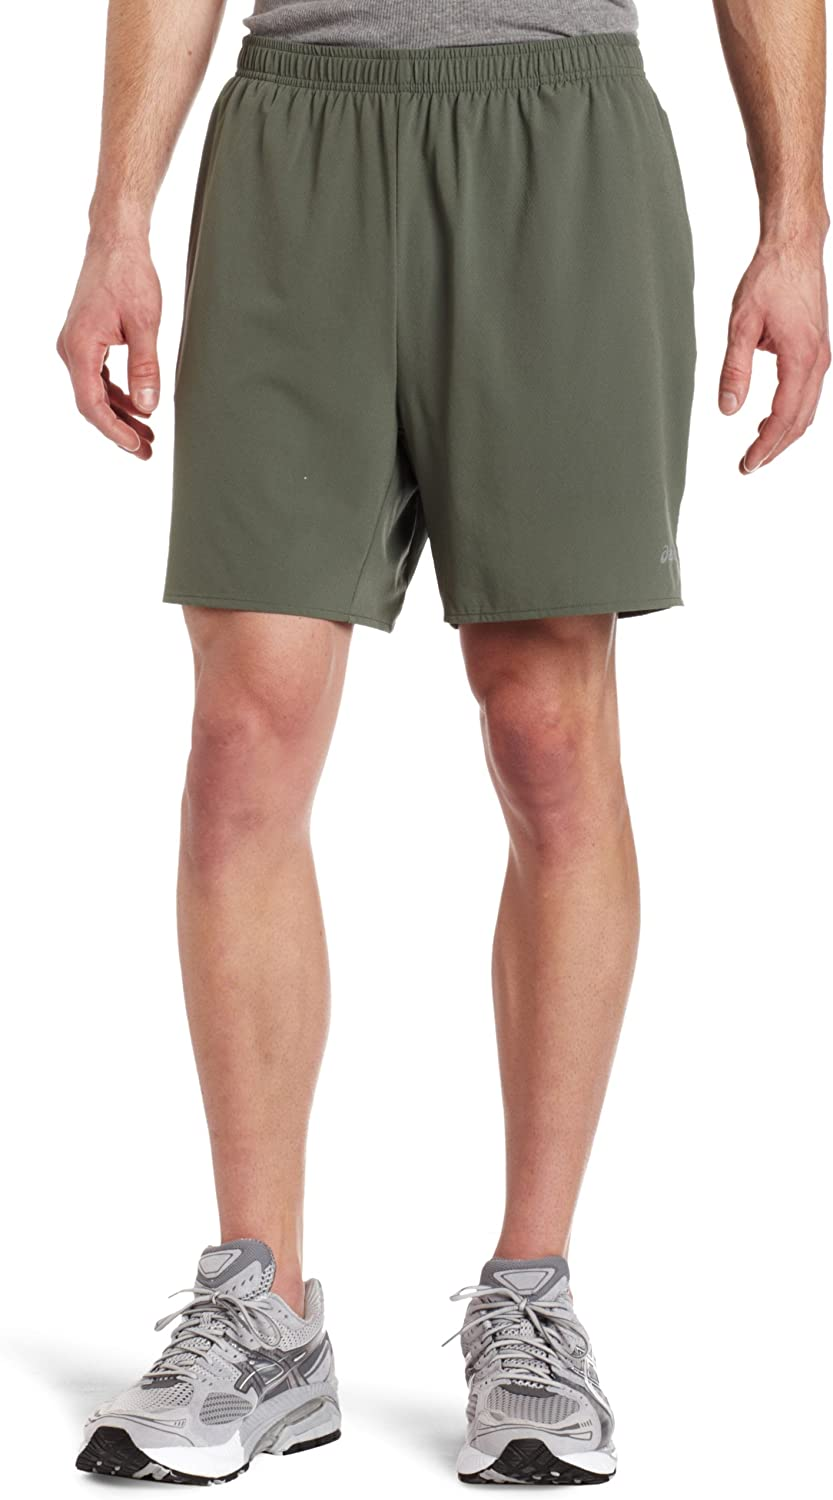 Challenge the lowest price of NEW Japan ASICS Men's 2 1 in Short